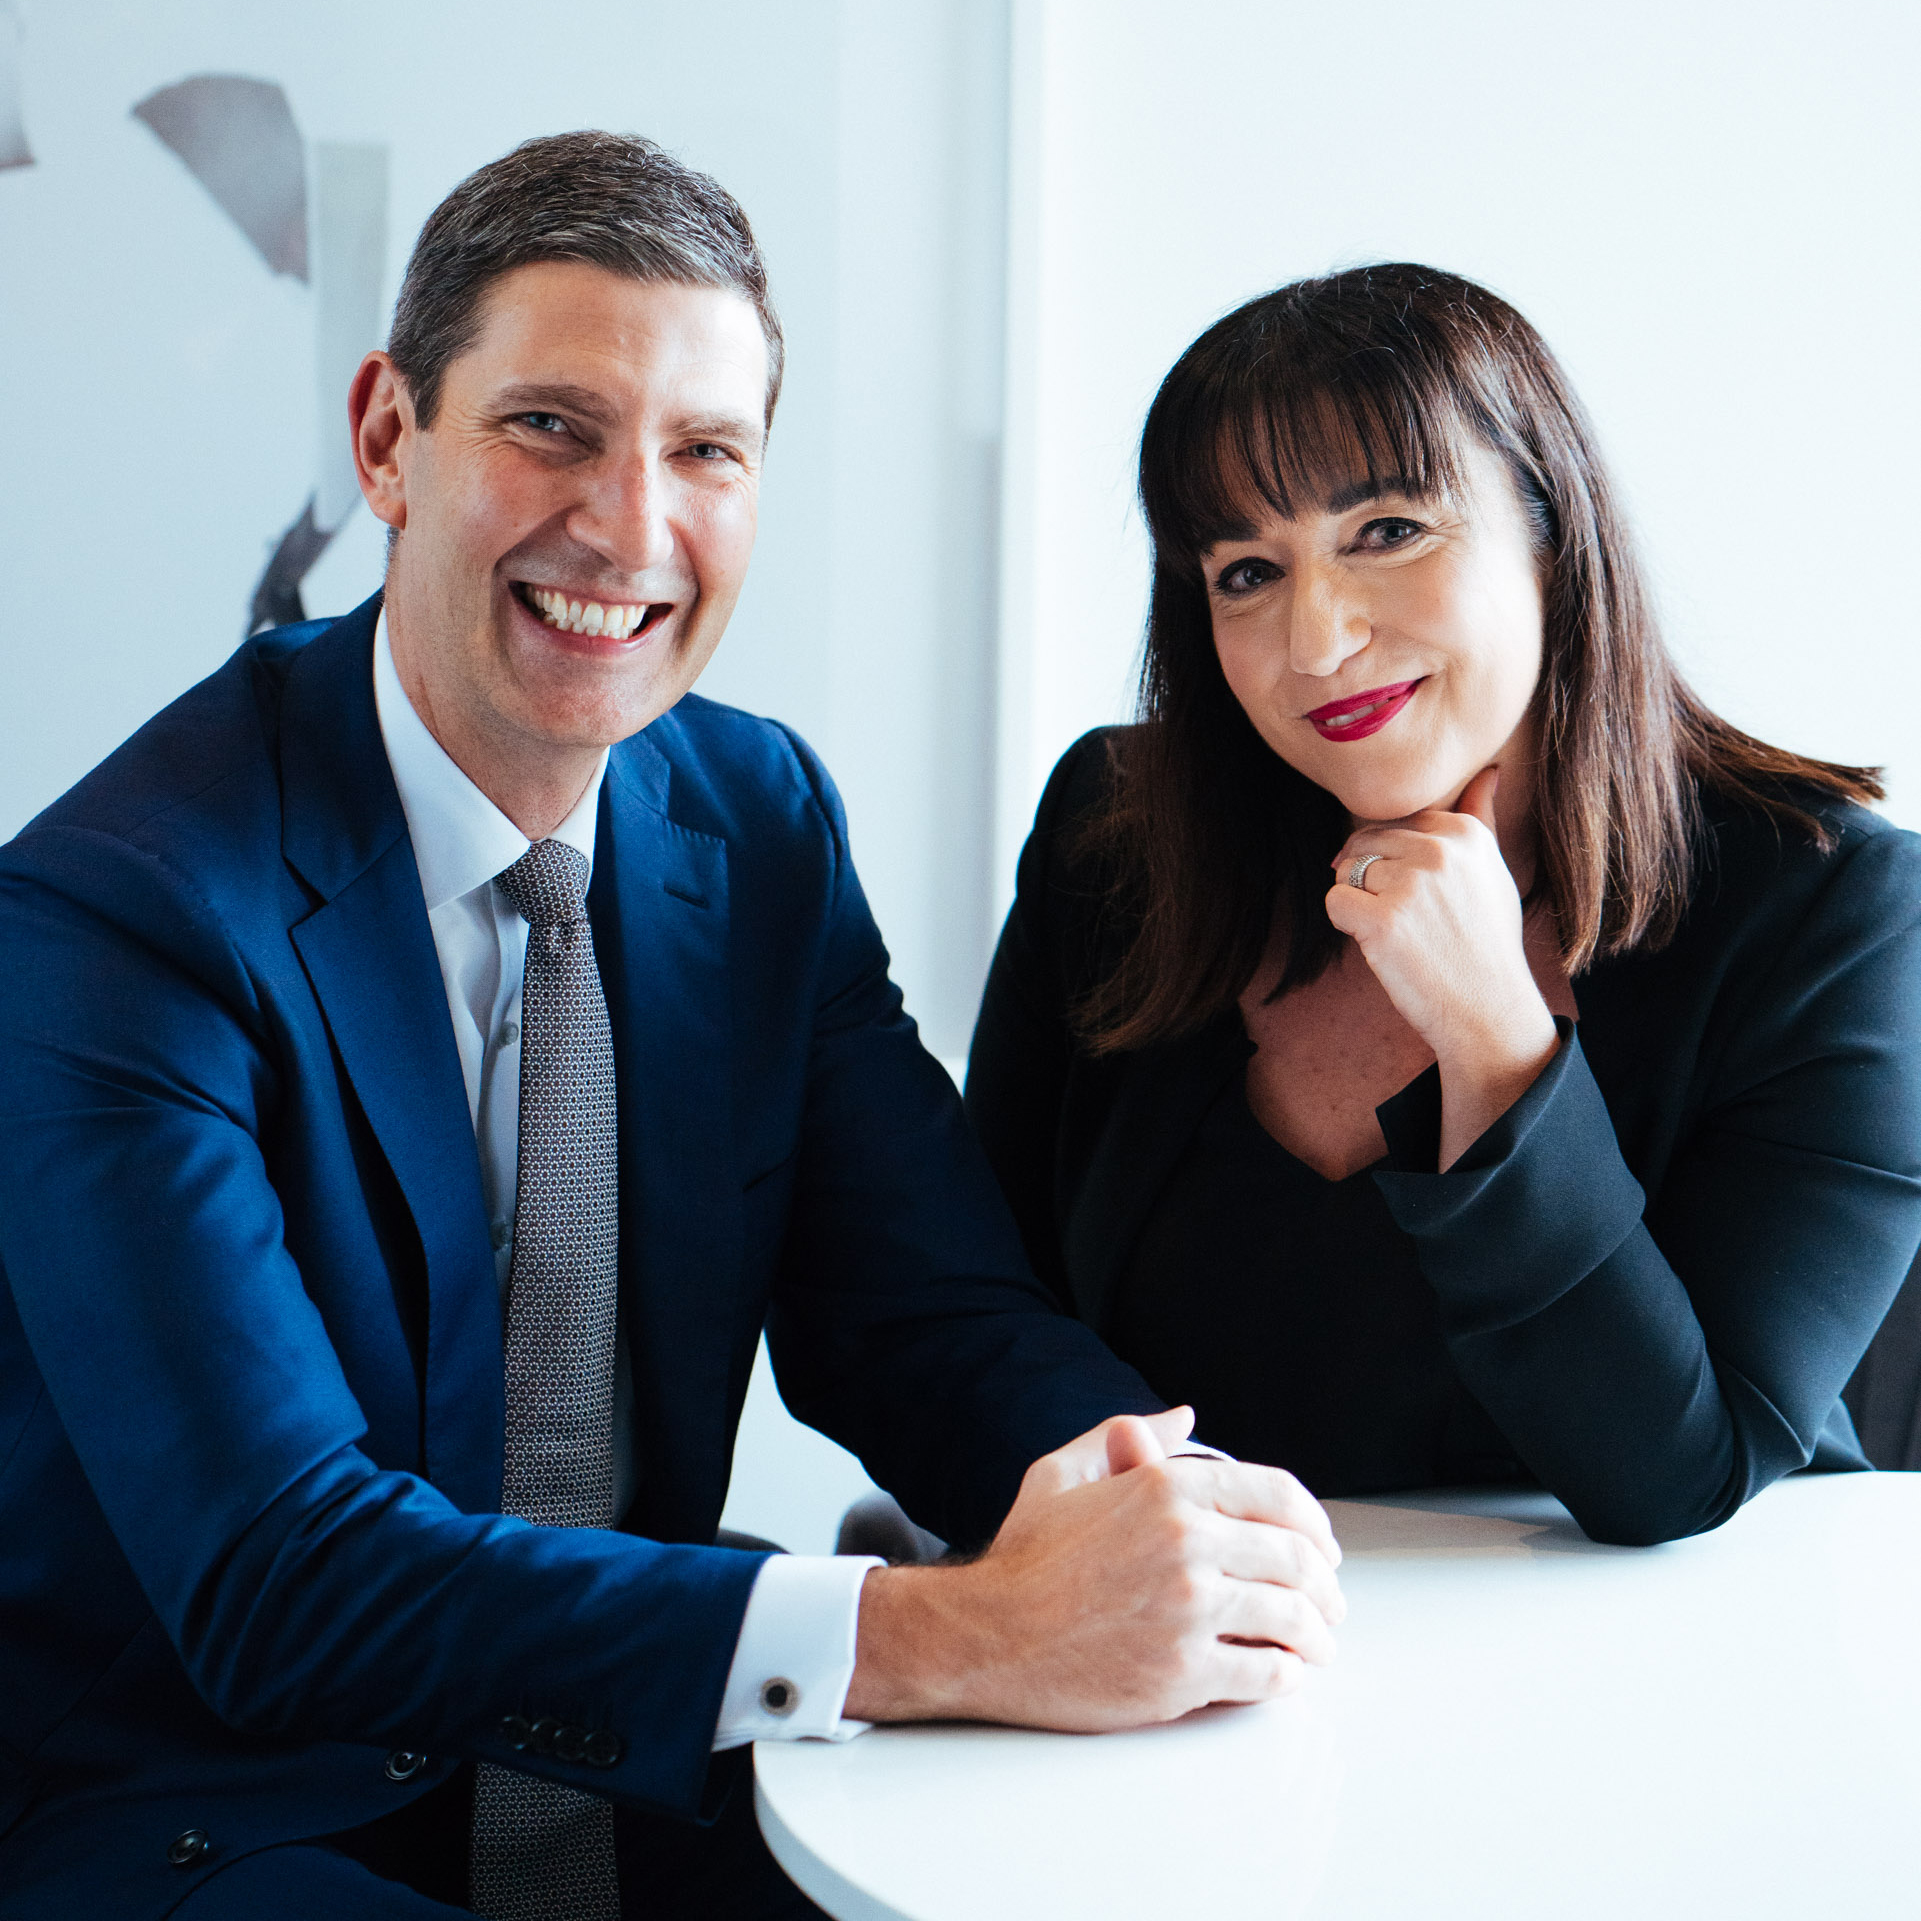 Four Seasons Hotel Sydney - Simon Barnett, Hotel Manager and Helen Radic, Director of Marketing